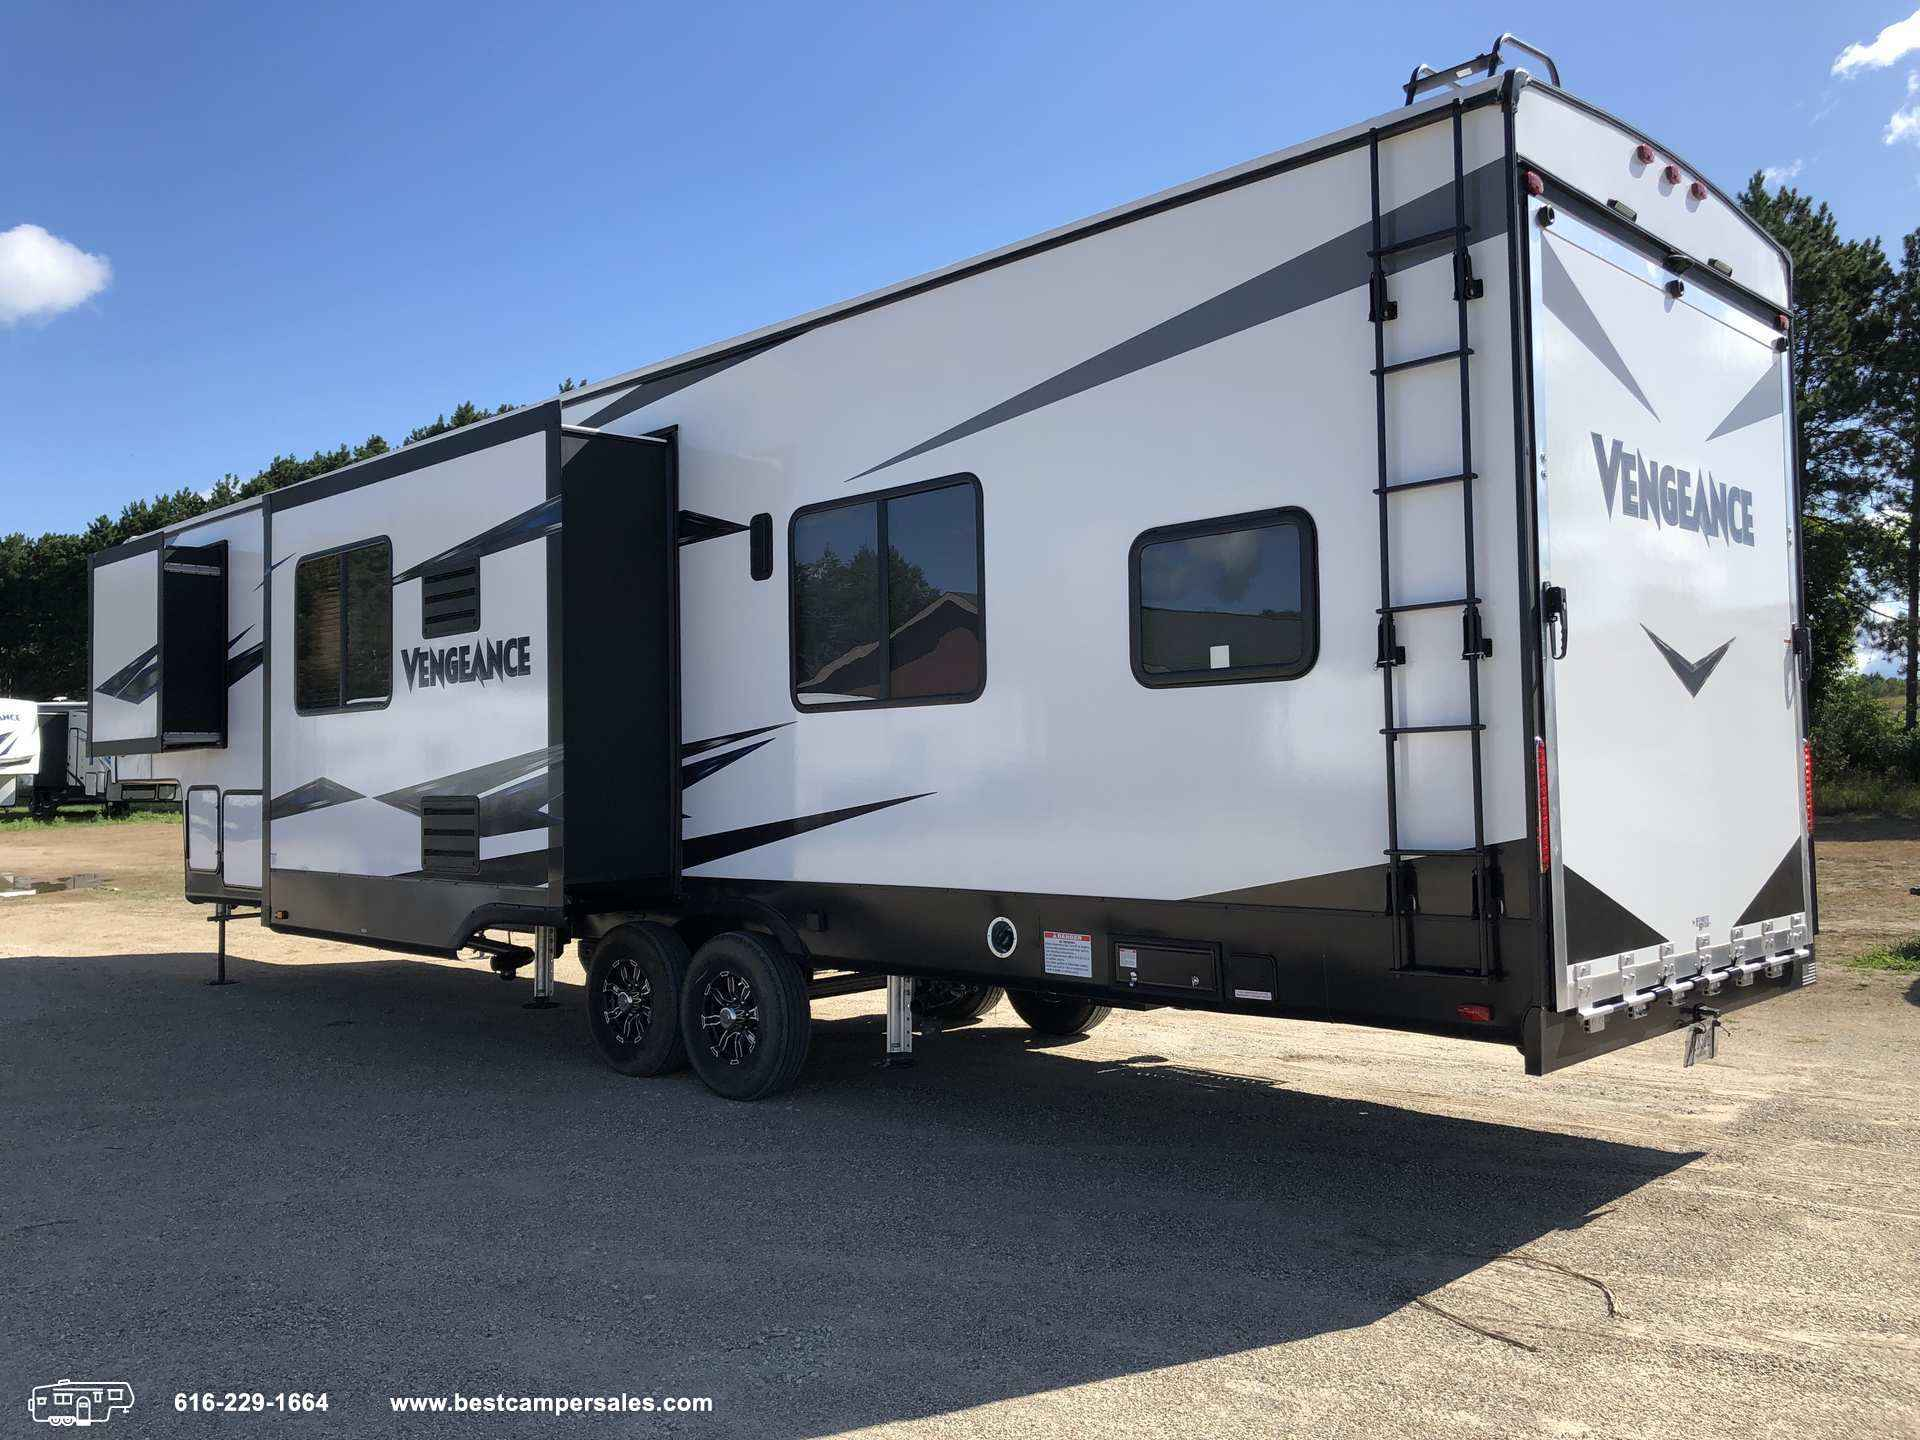 2019 Forest River Vengeance 345A13